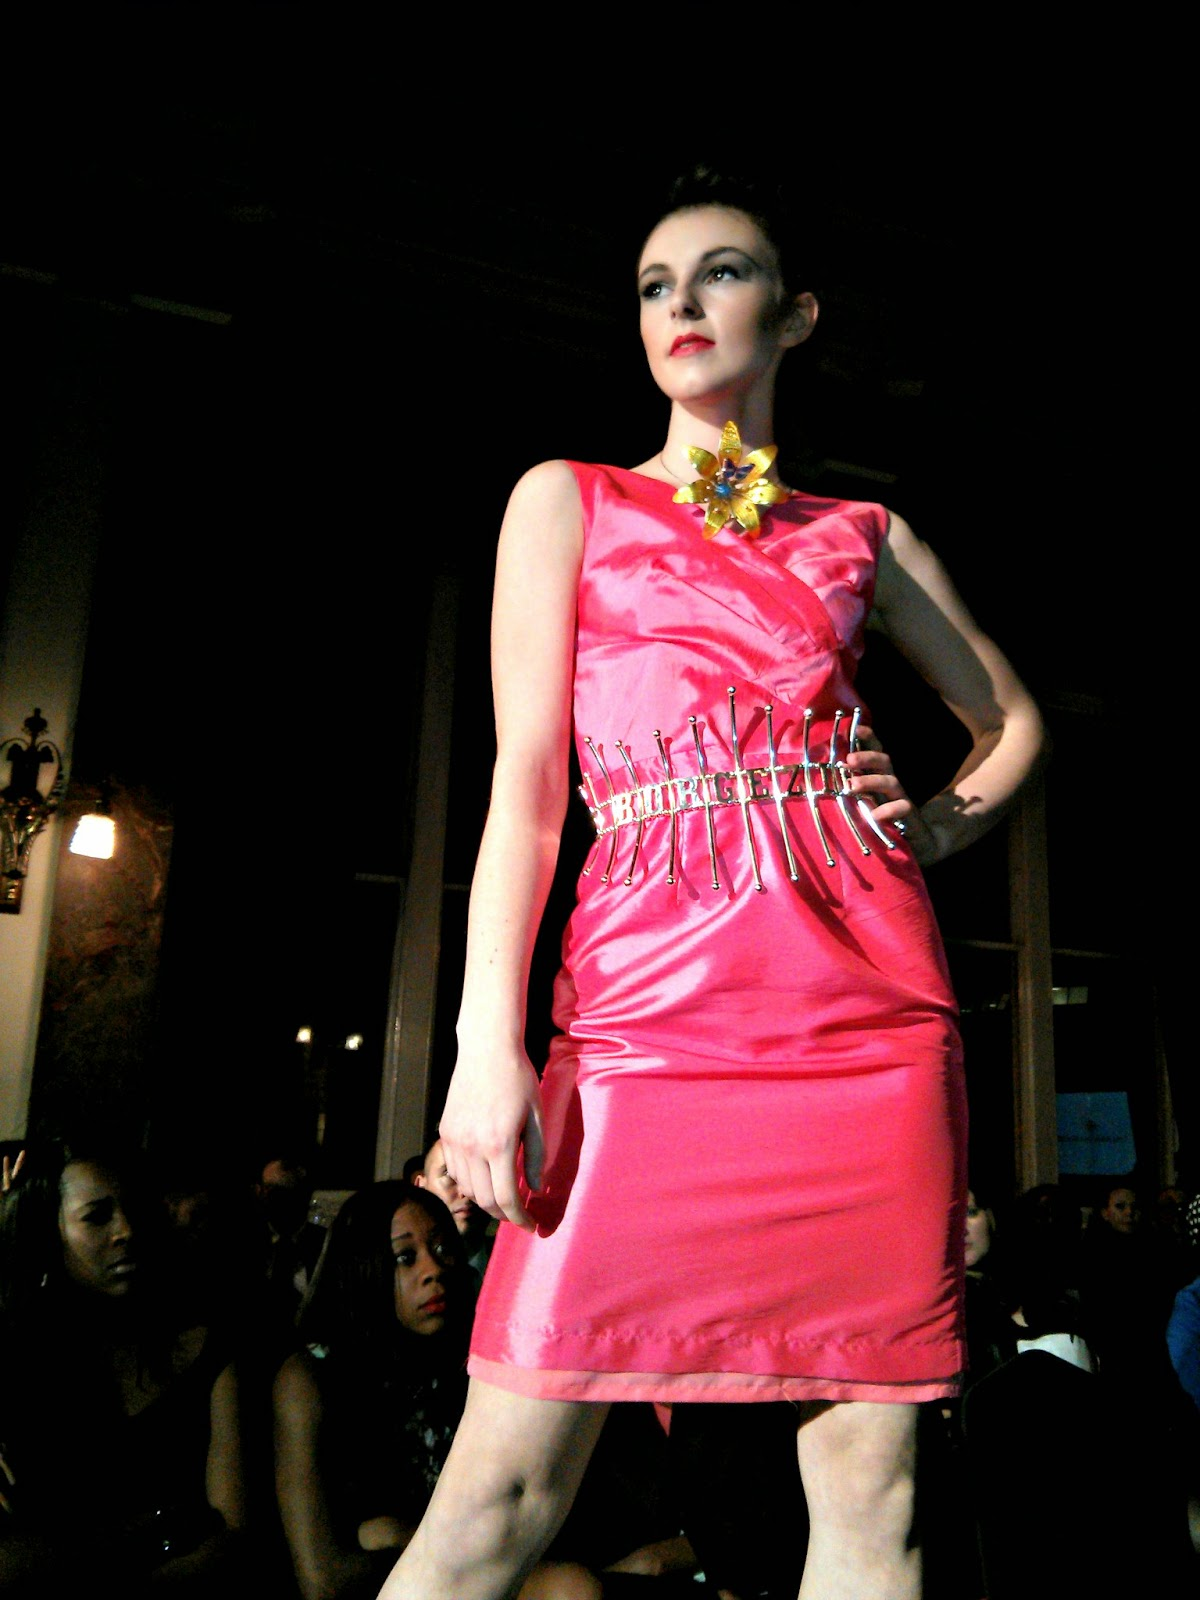 Jewellery designs at Birmingham Fashion Week